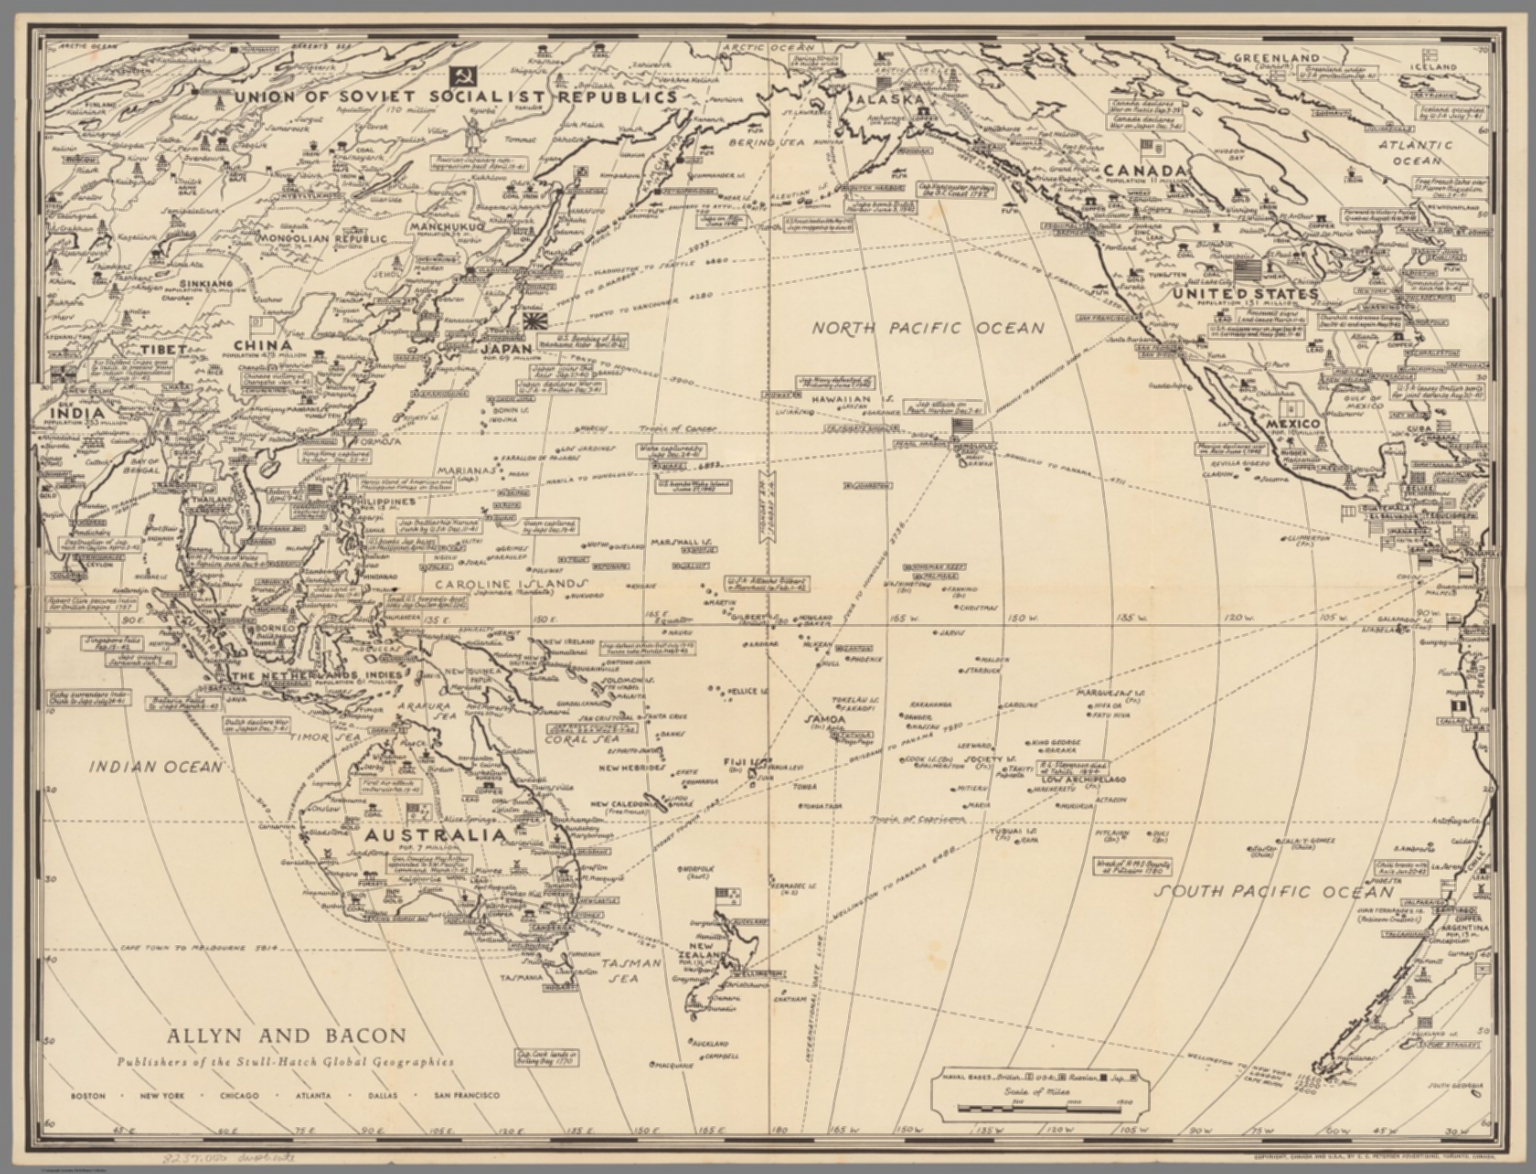 War map of Pacific Ocean area - David Rumsey Historical Map Collection